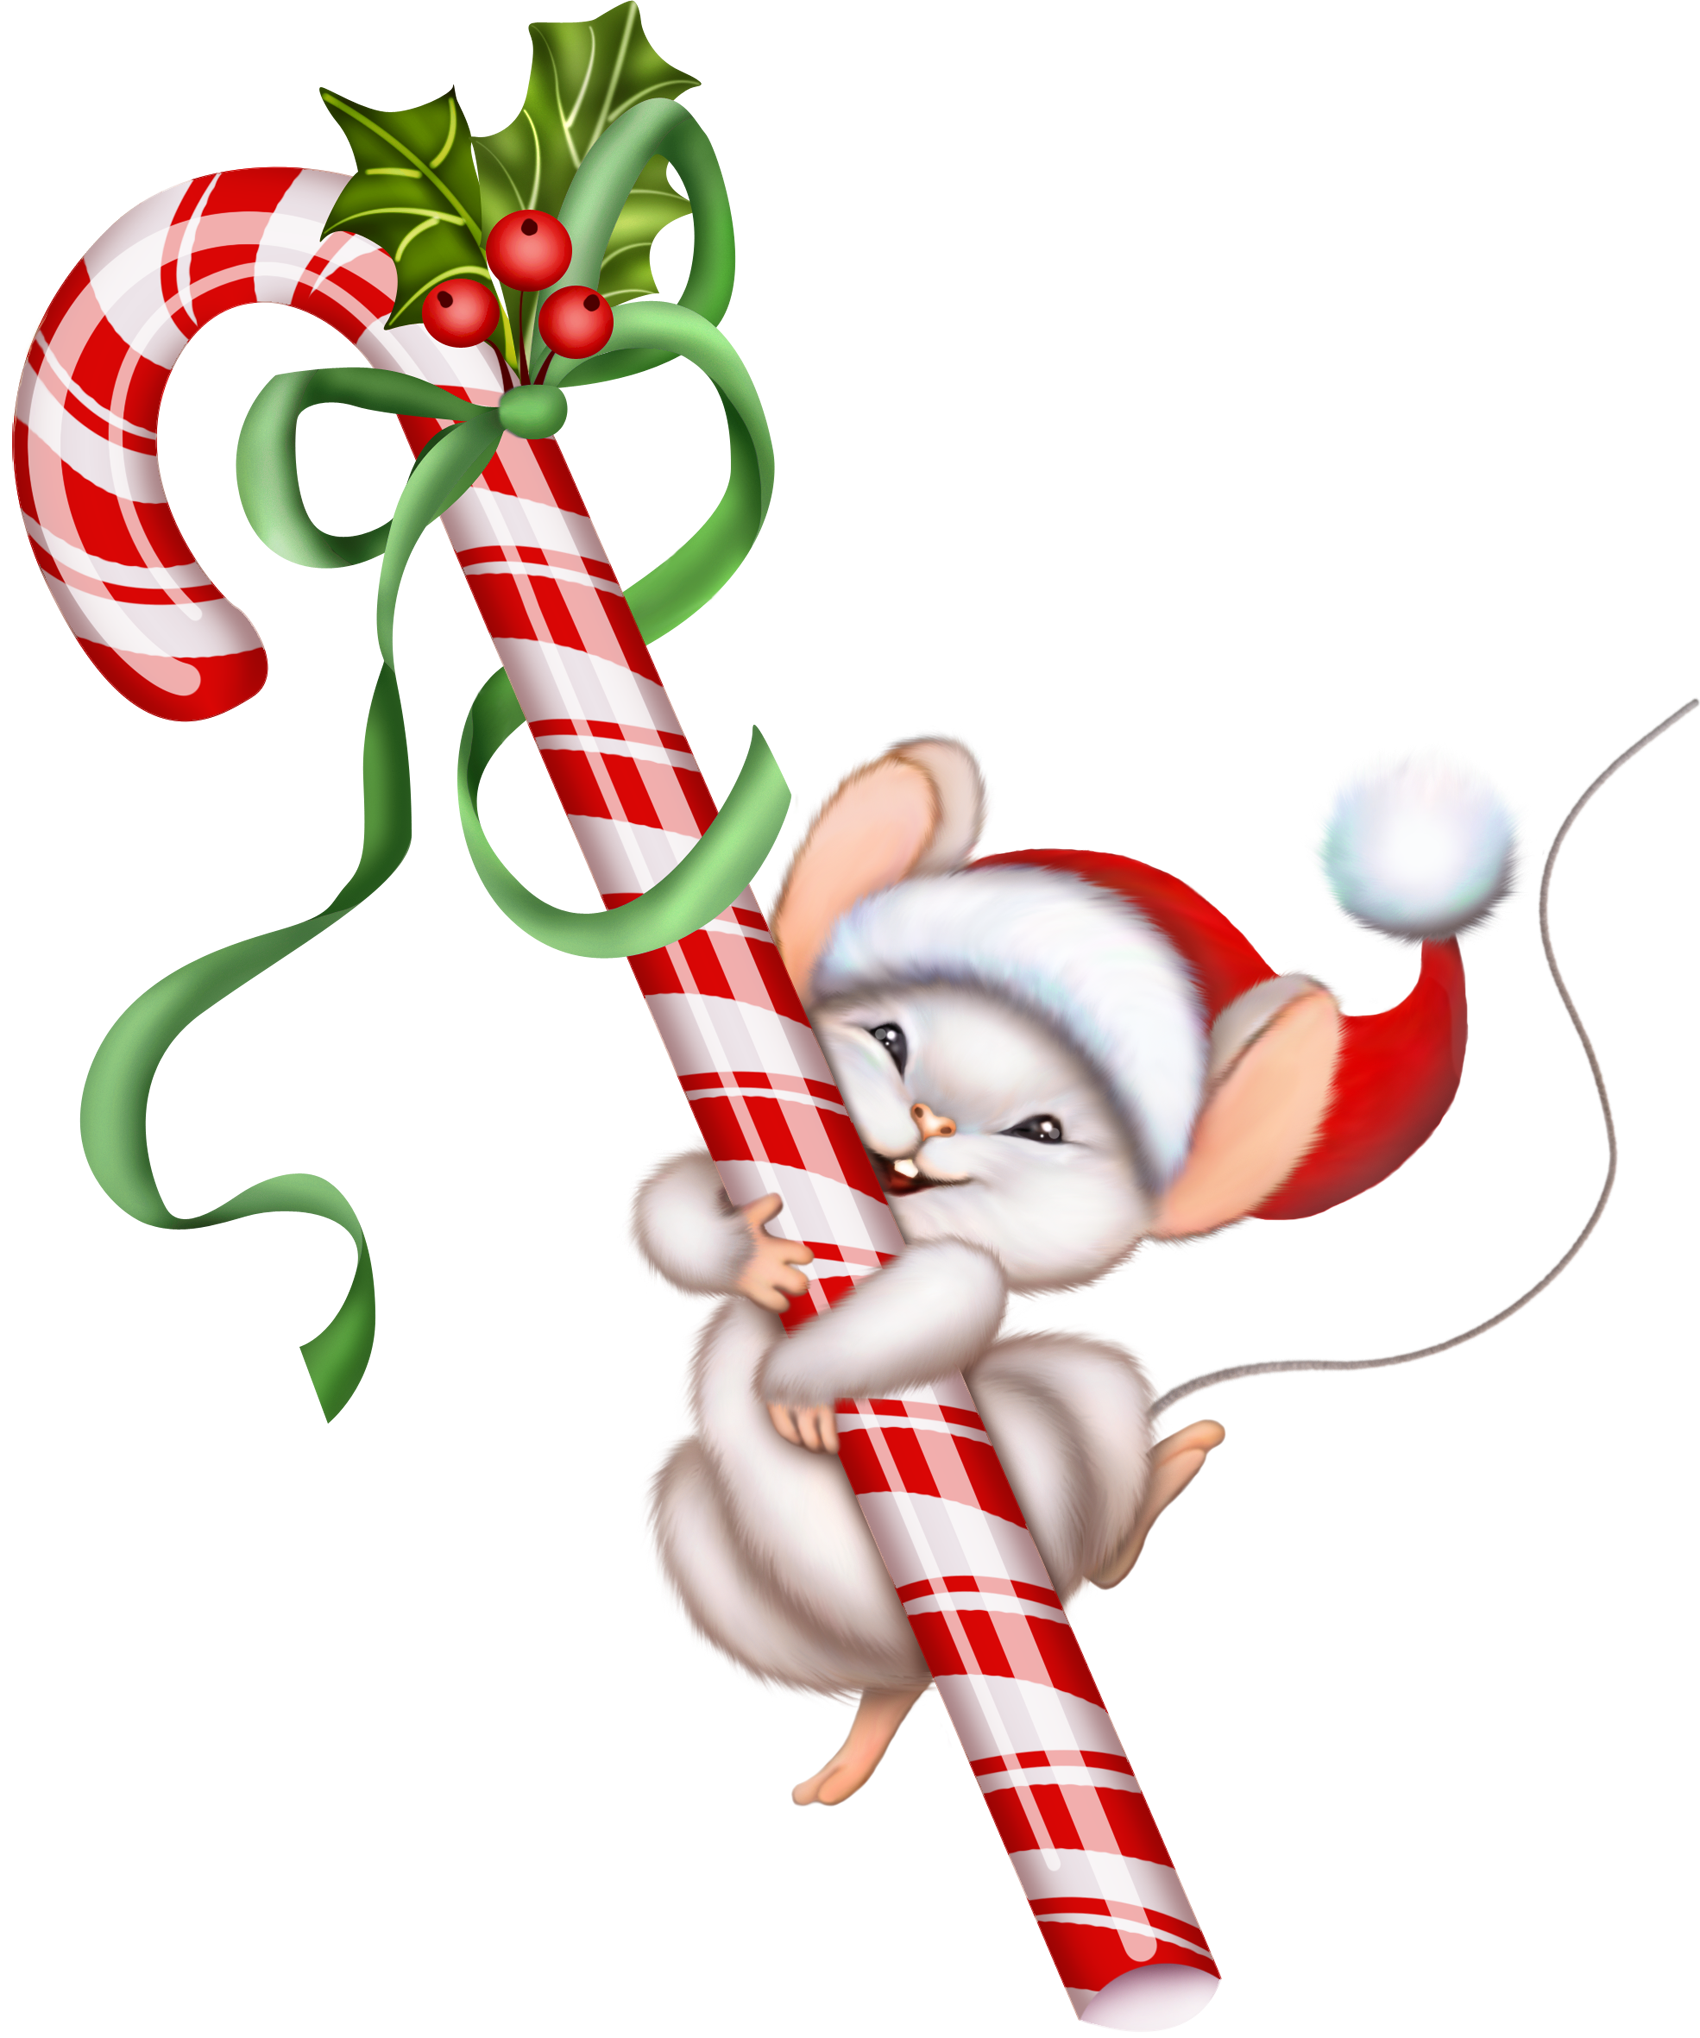 Candy canes clipart #11